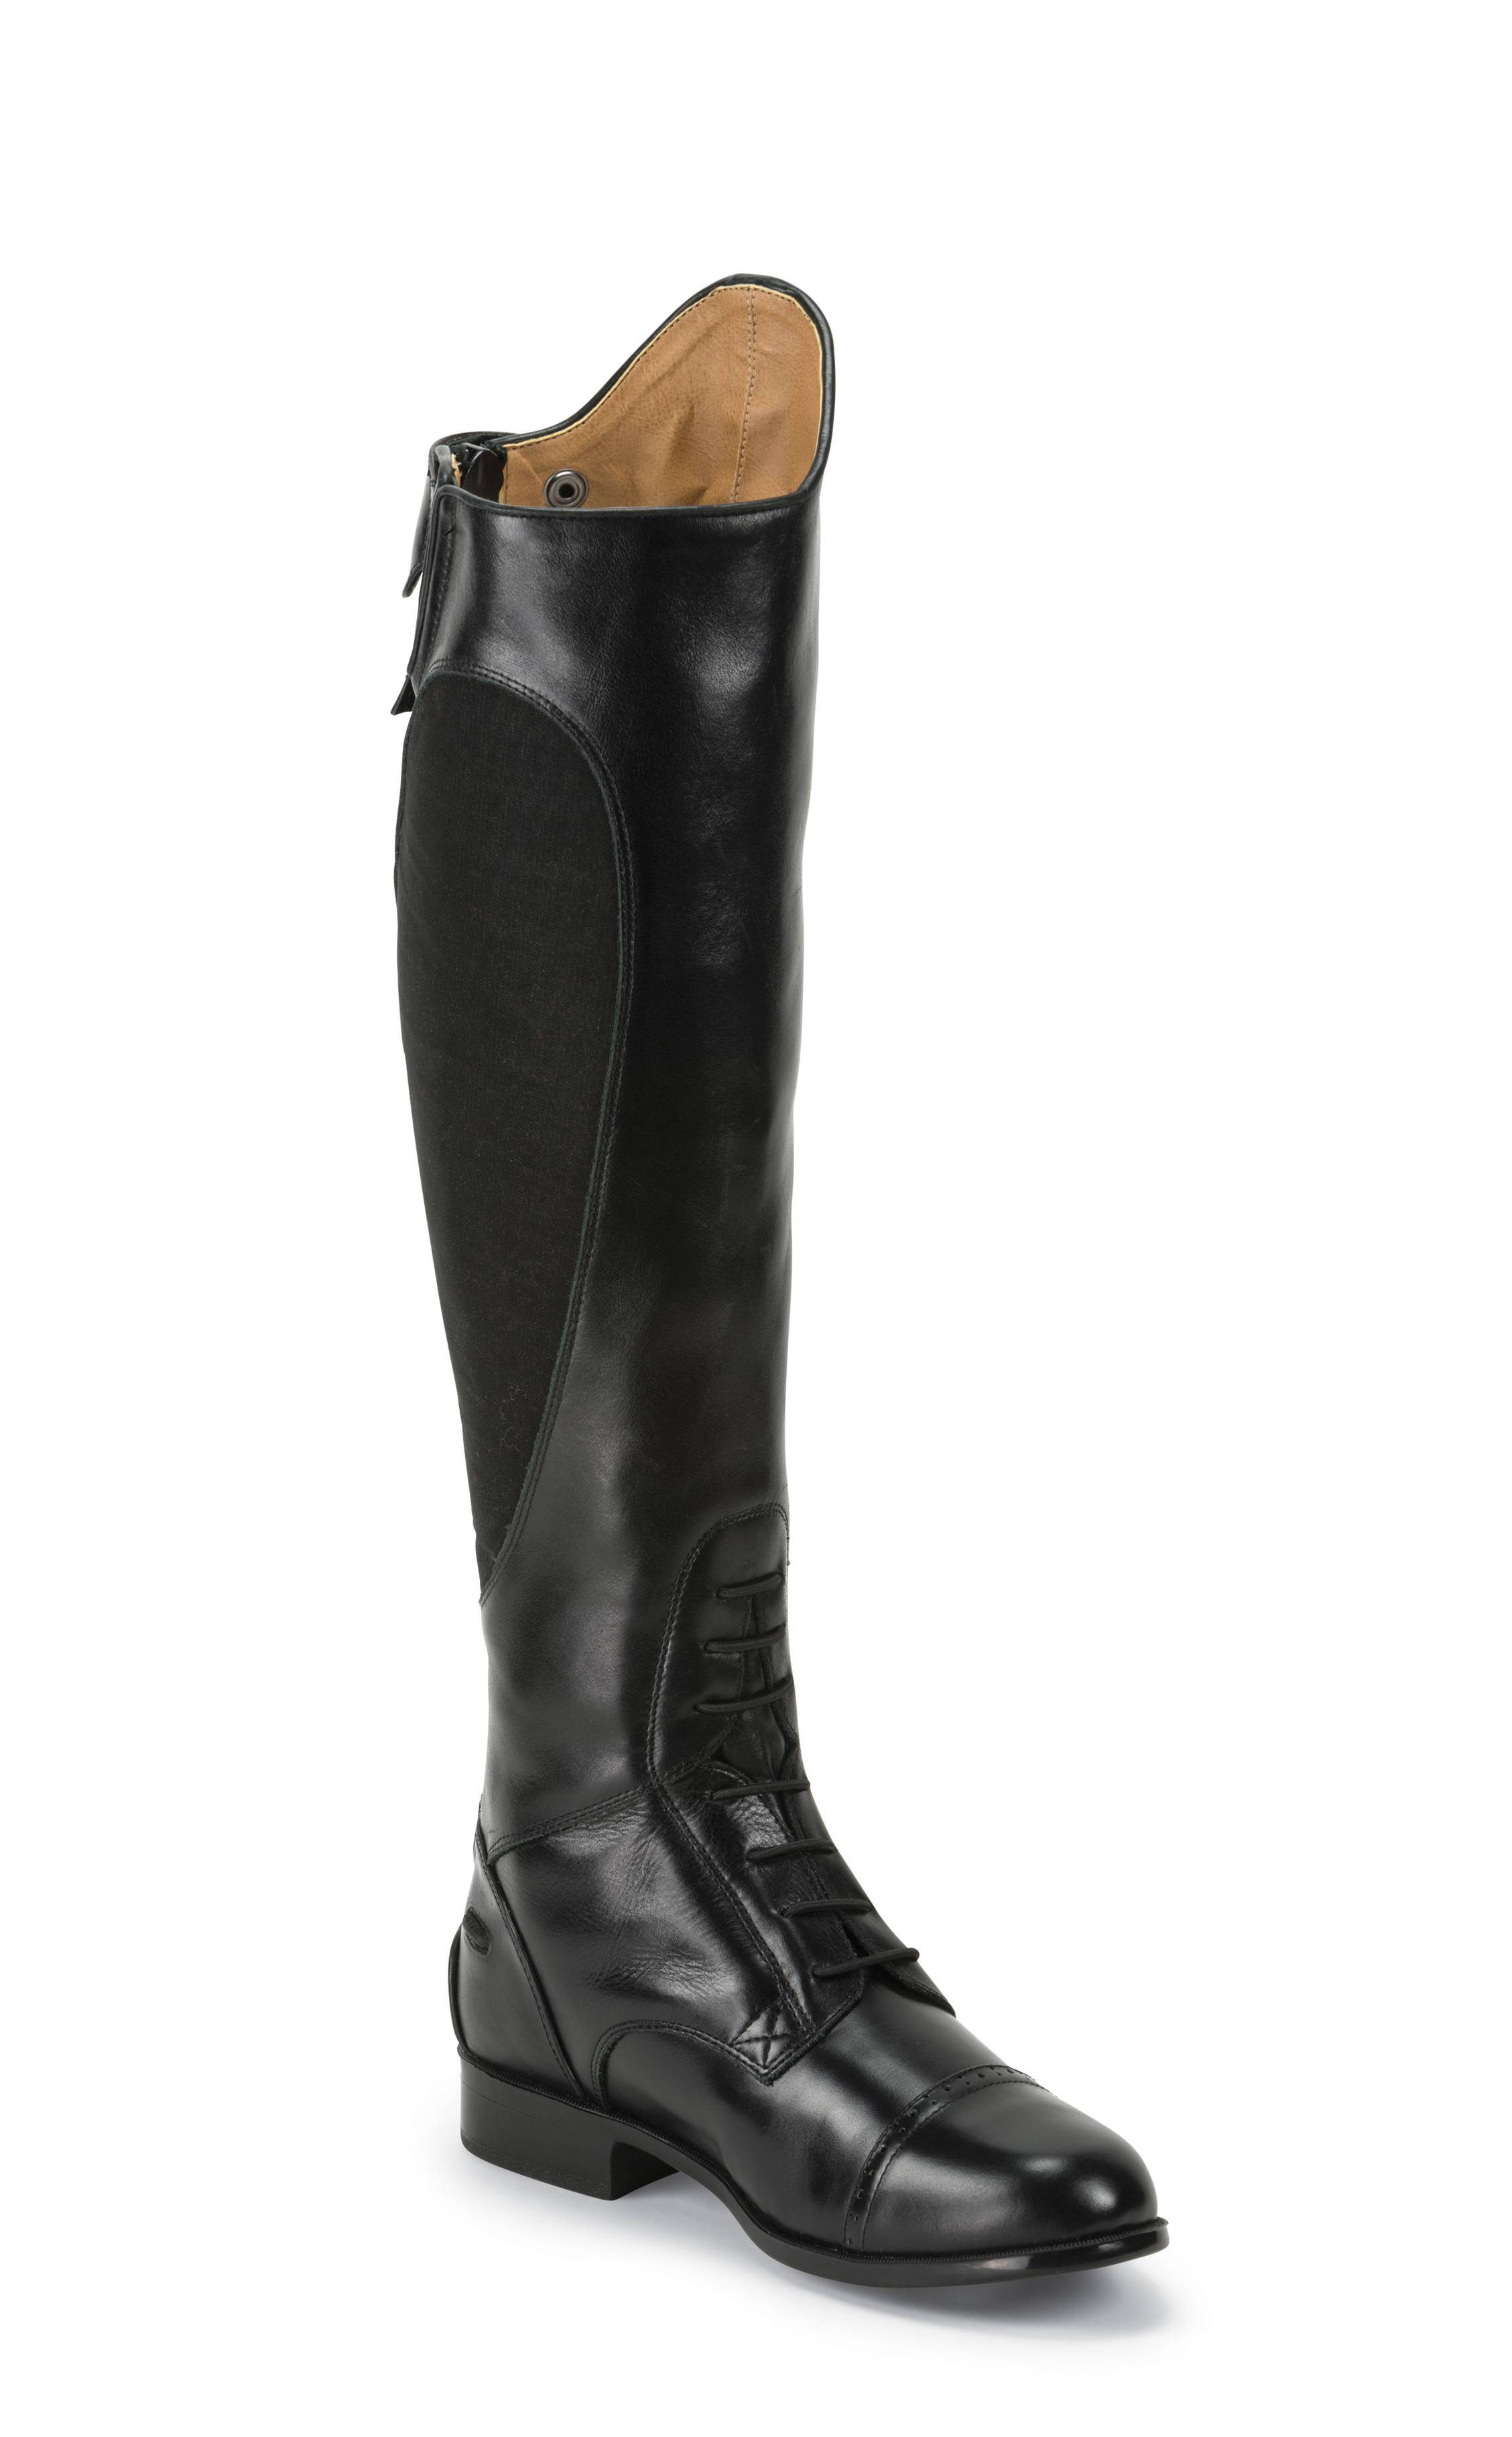 Justin Windshire Leather Field Boots - Ladies